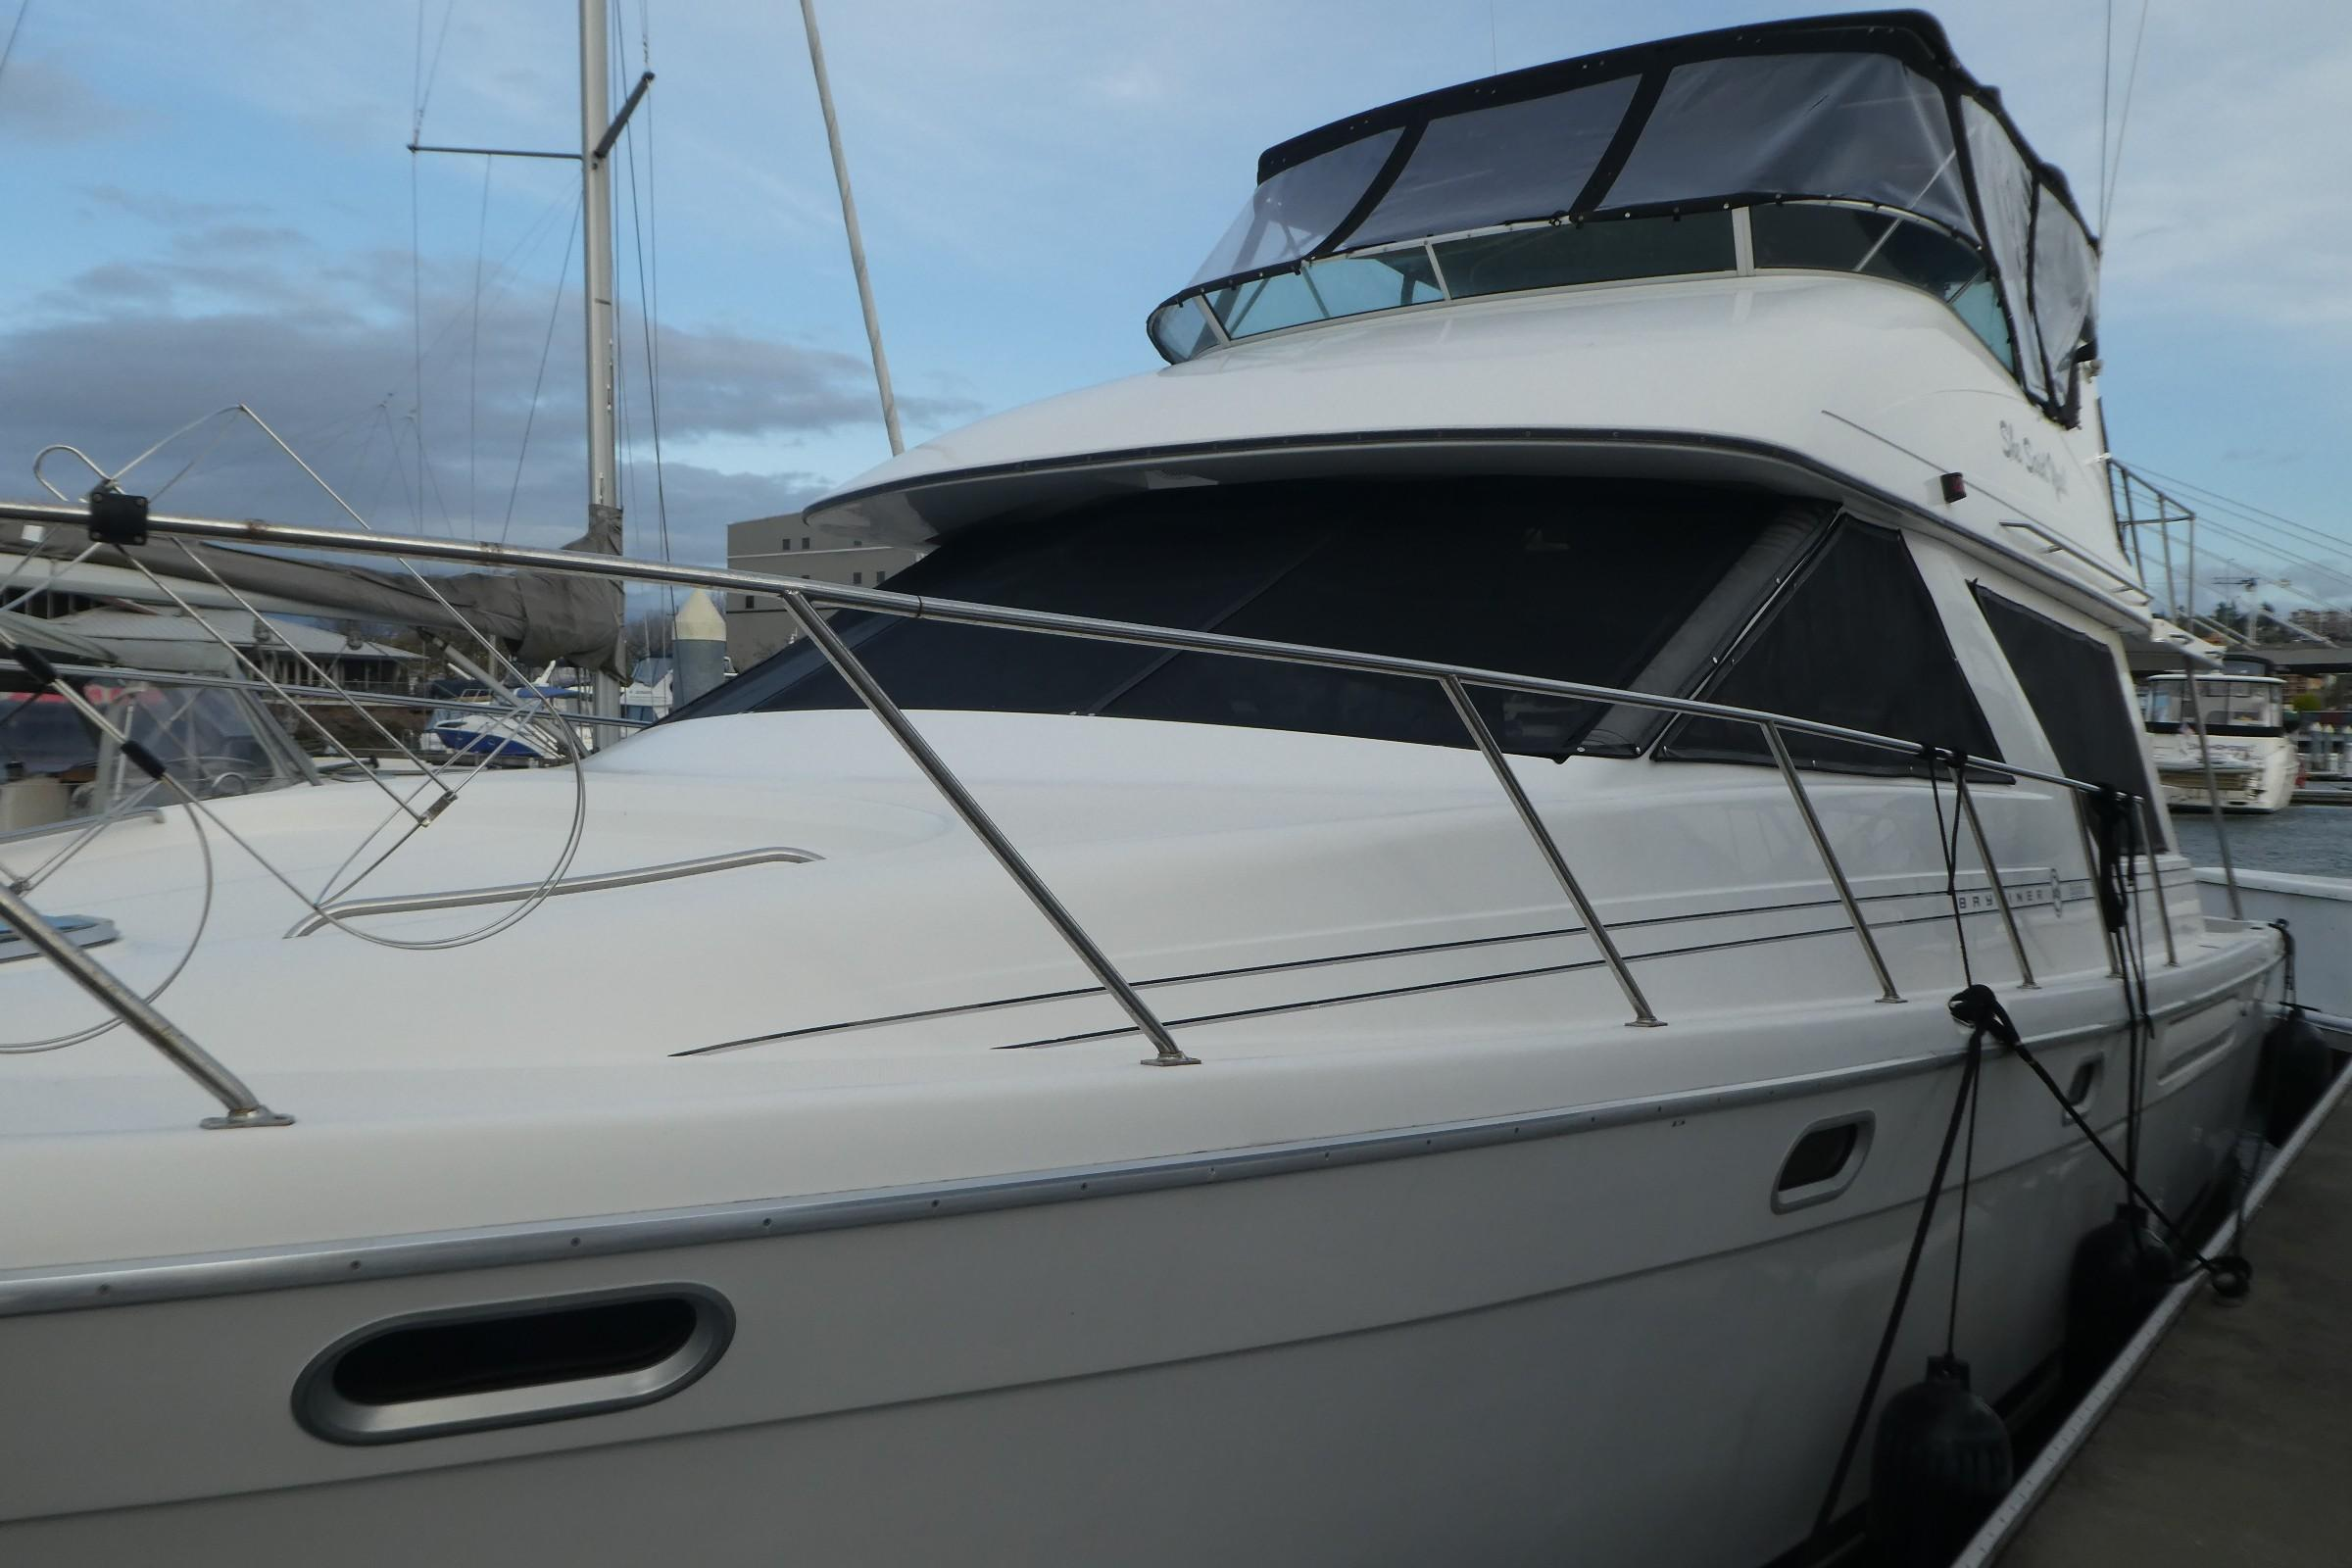 Boat Details - NW Yachtnet